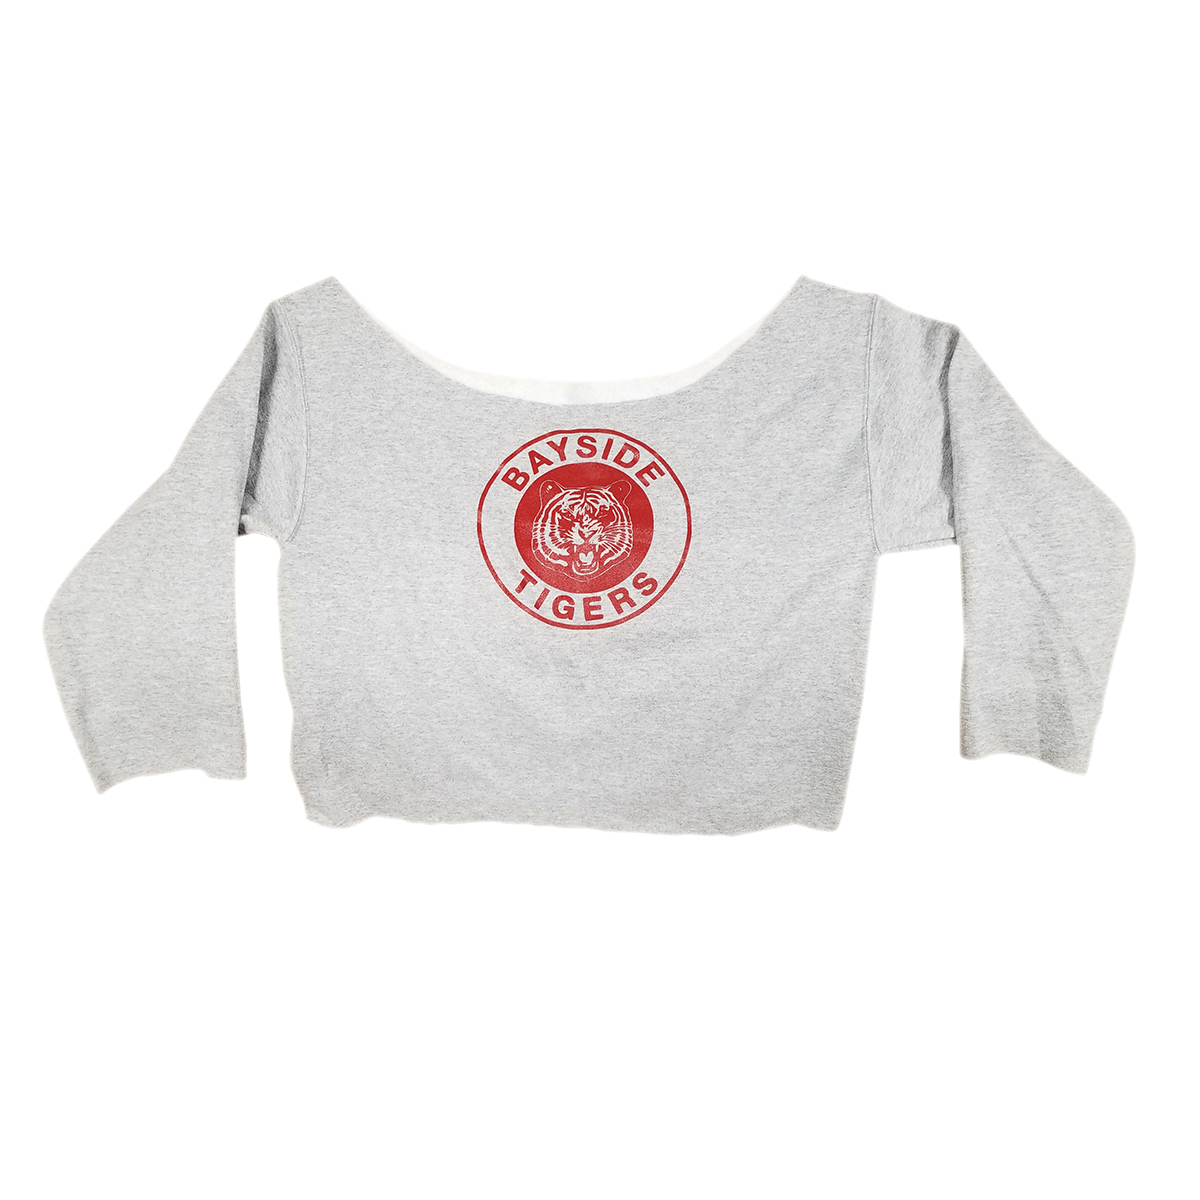 Kelly Kapowski Sweatshirt WIDE NECK Bayside Tigers Costume Saved By ...